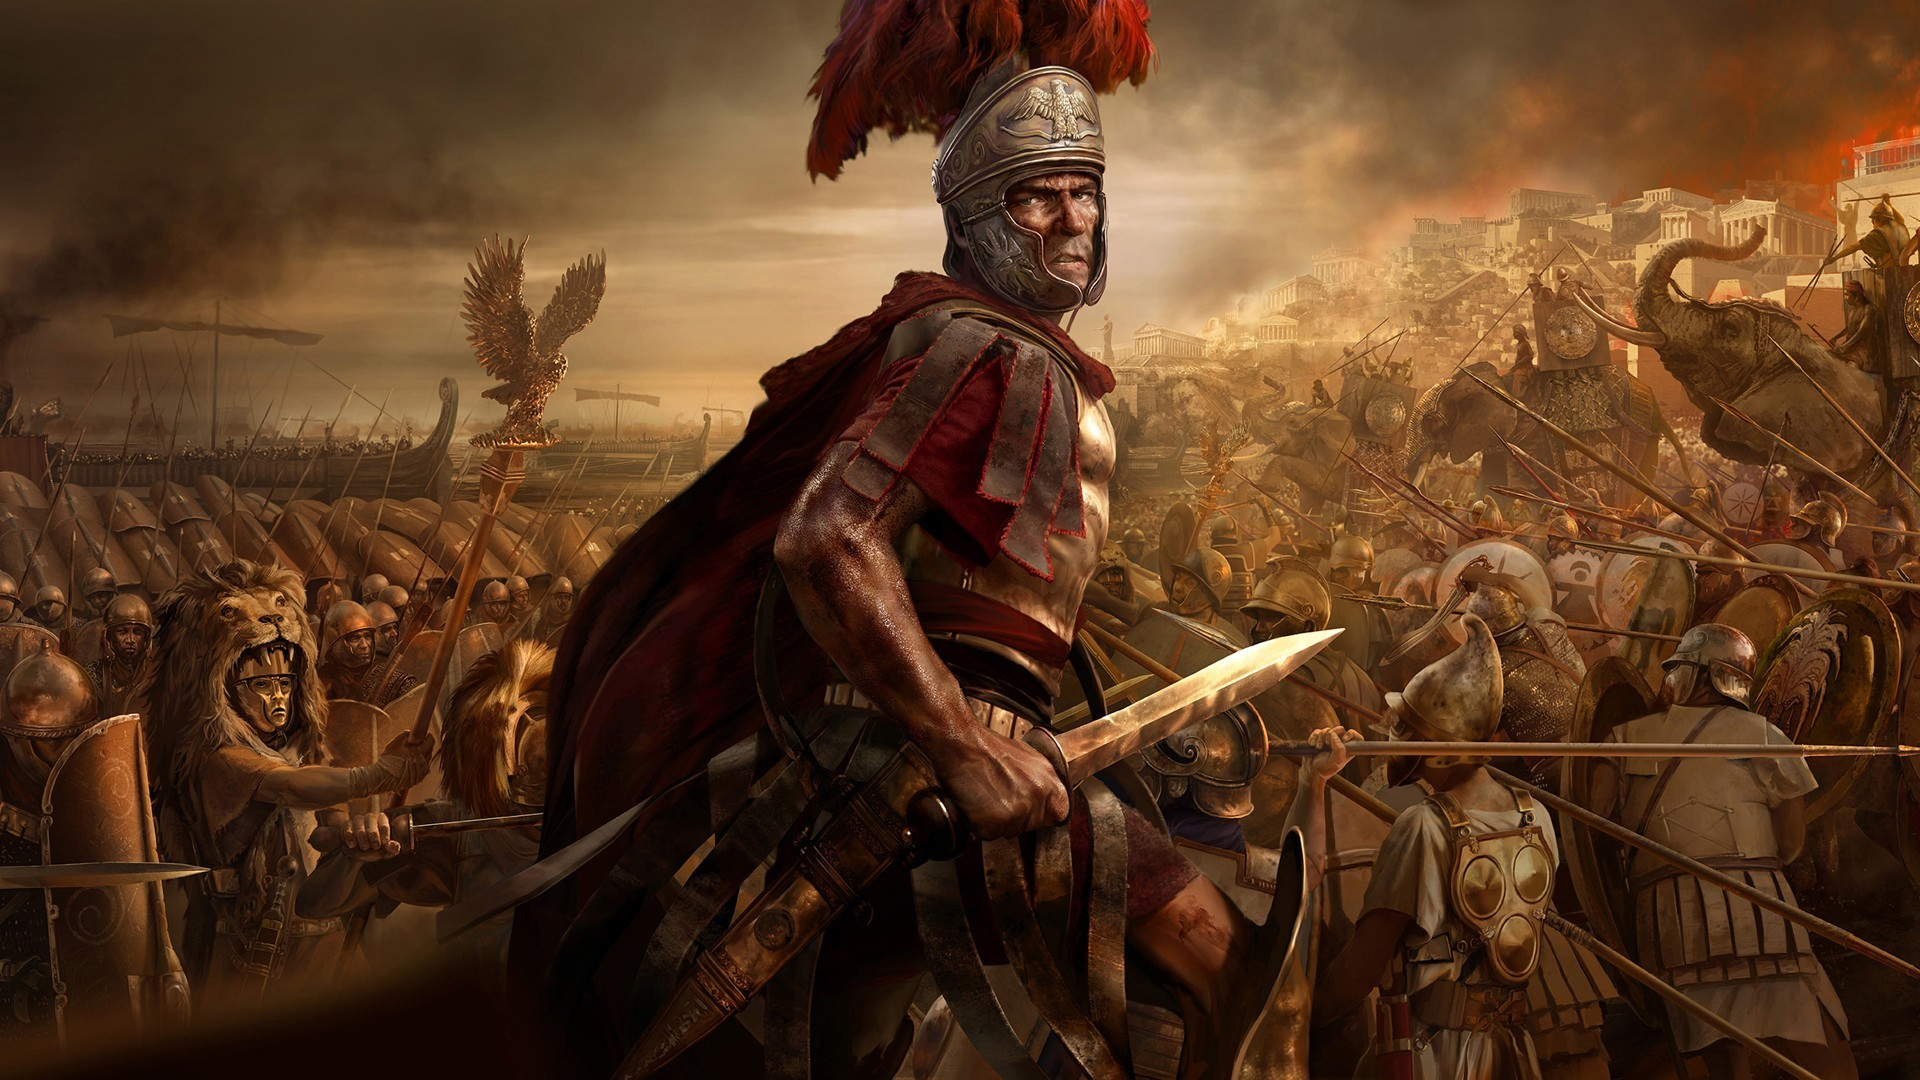 the main plan of attack for the romans